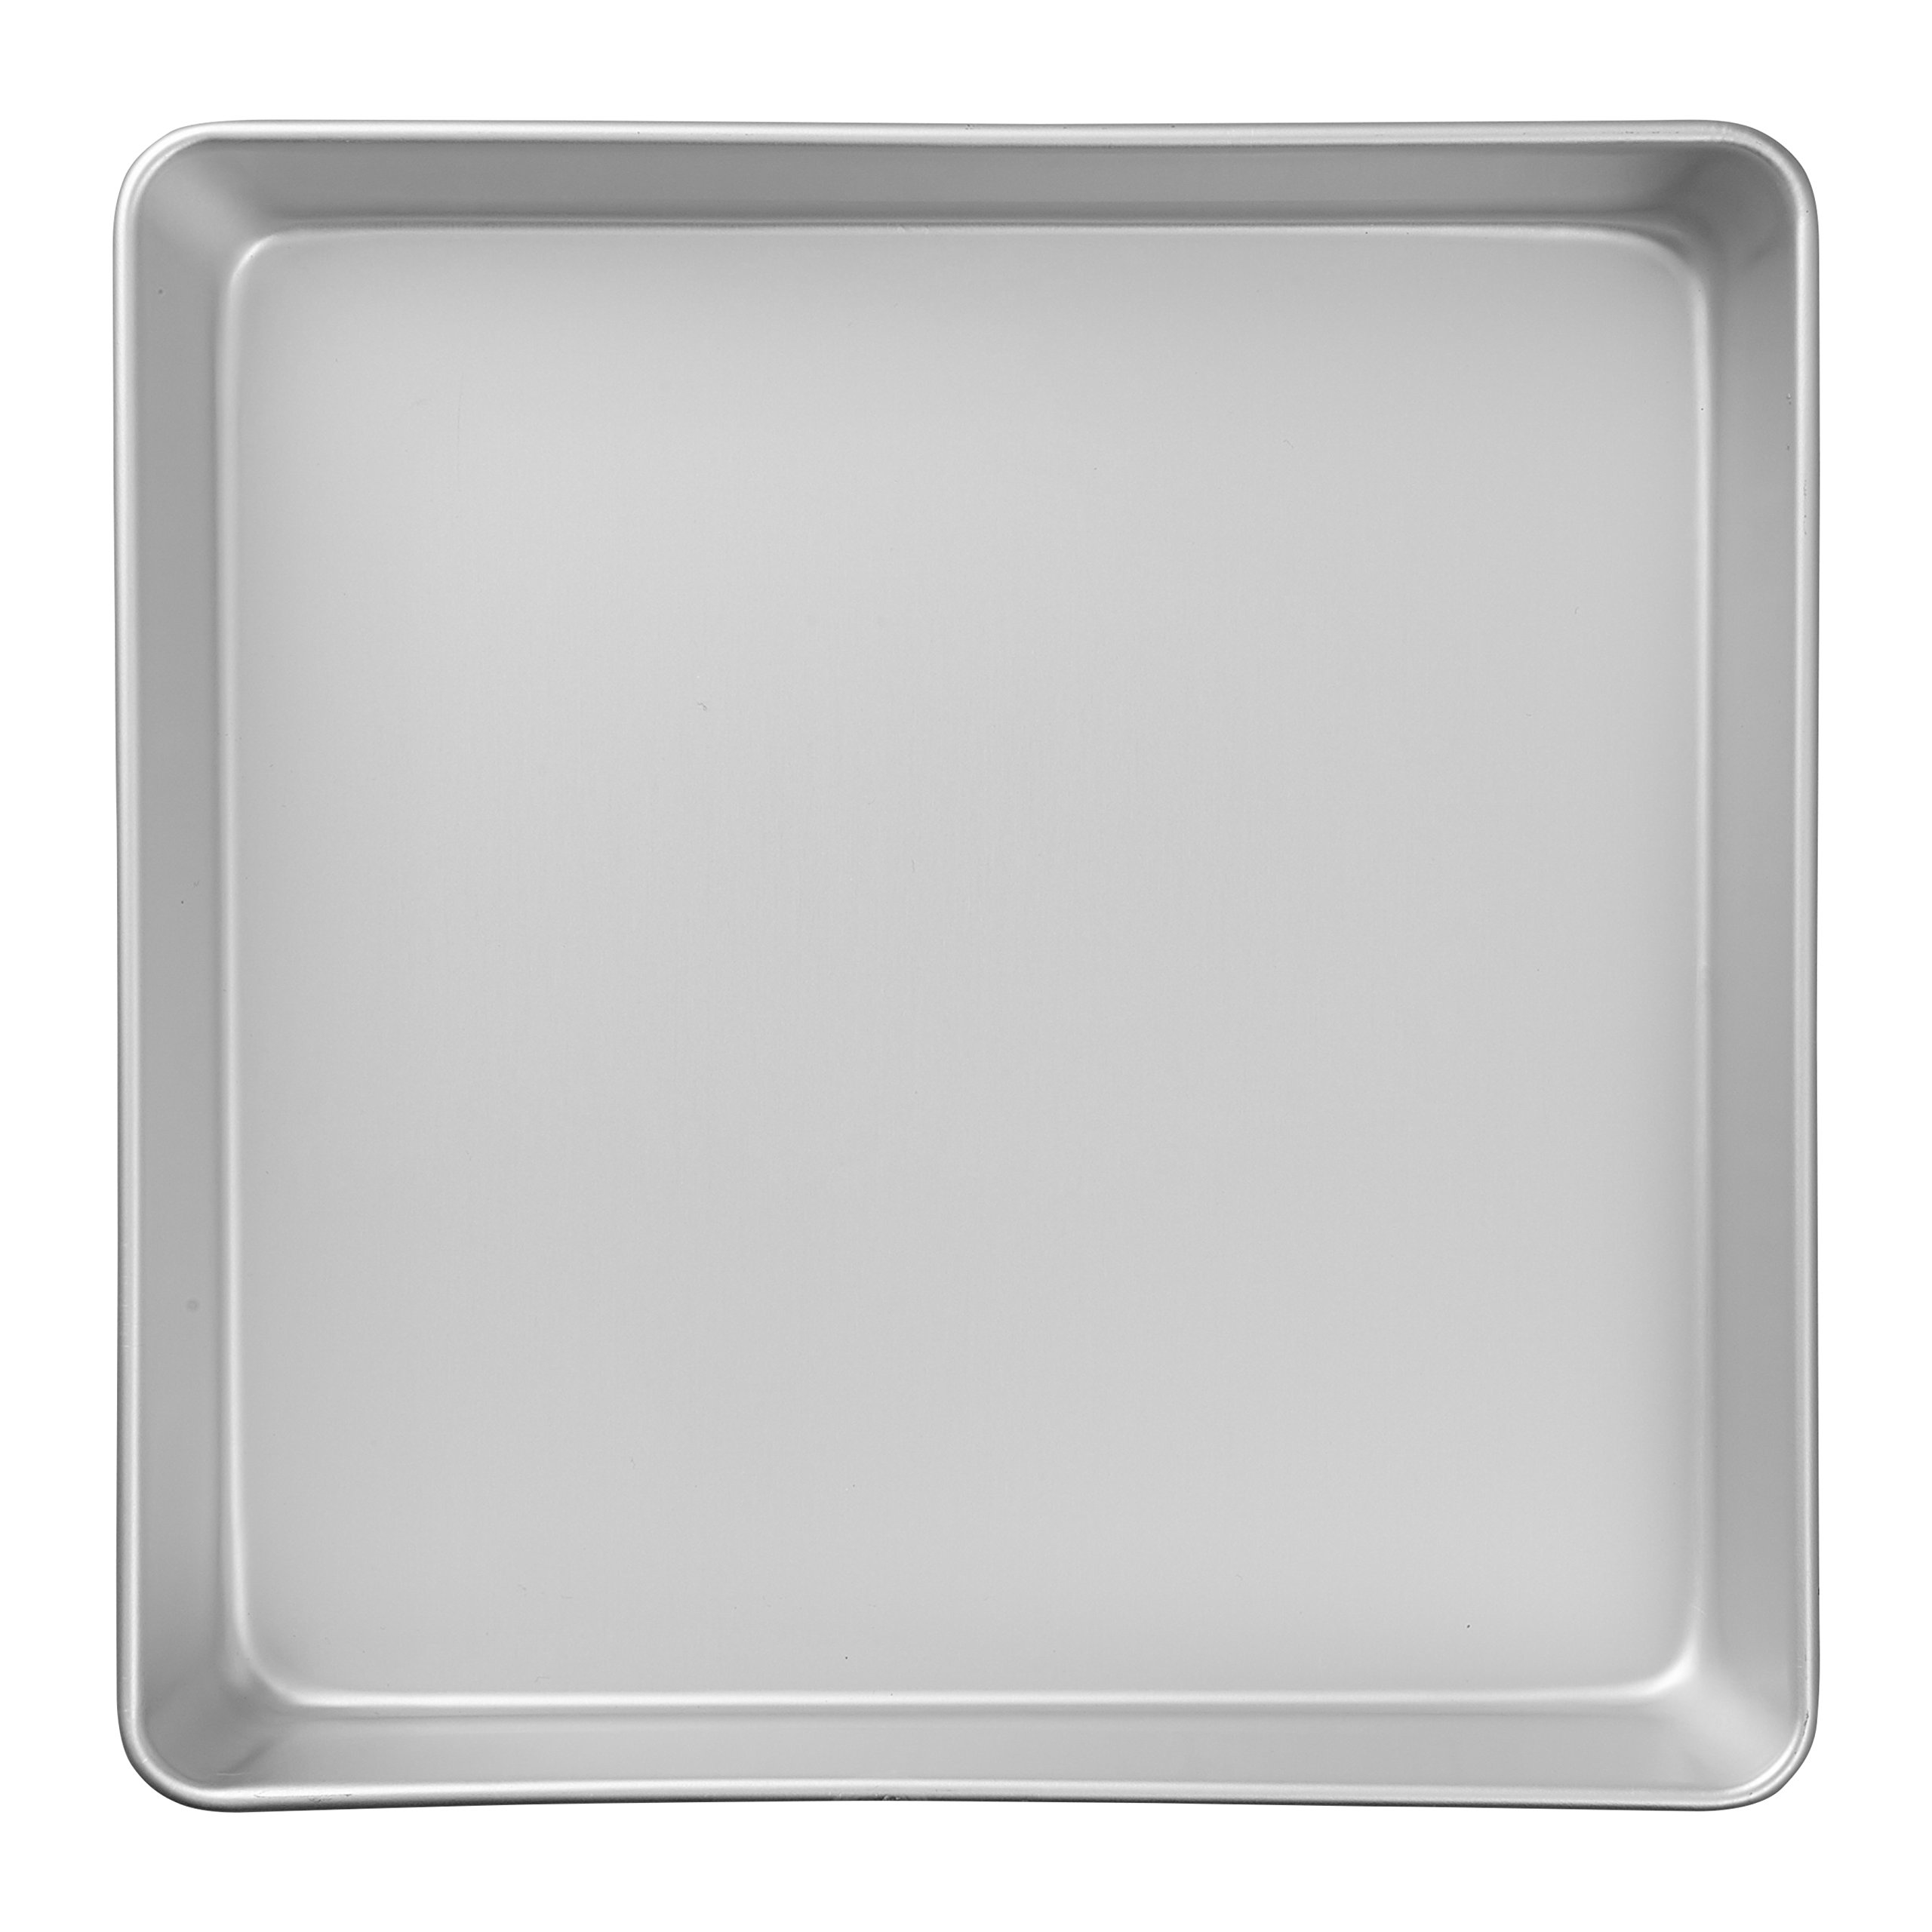 Wilton Performance Pans Aluminum Square Cake and Brownie Pan, 12-Inch by Wilton